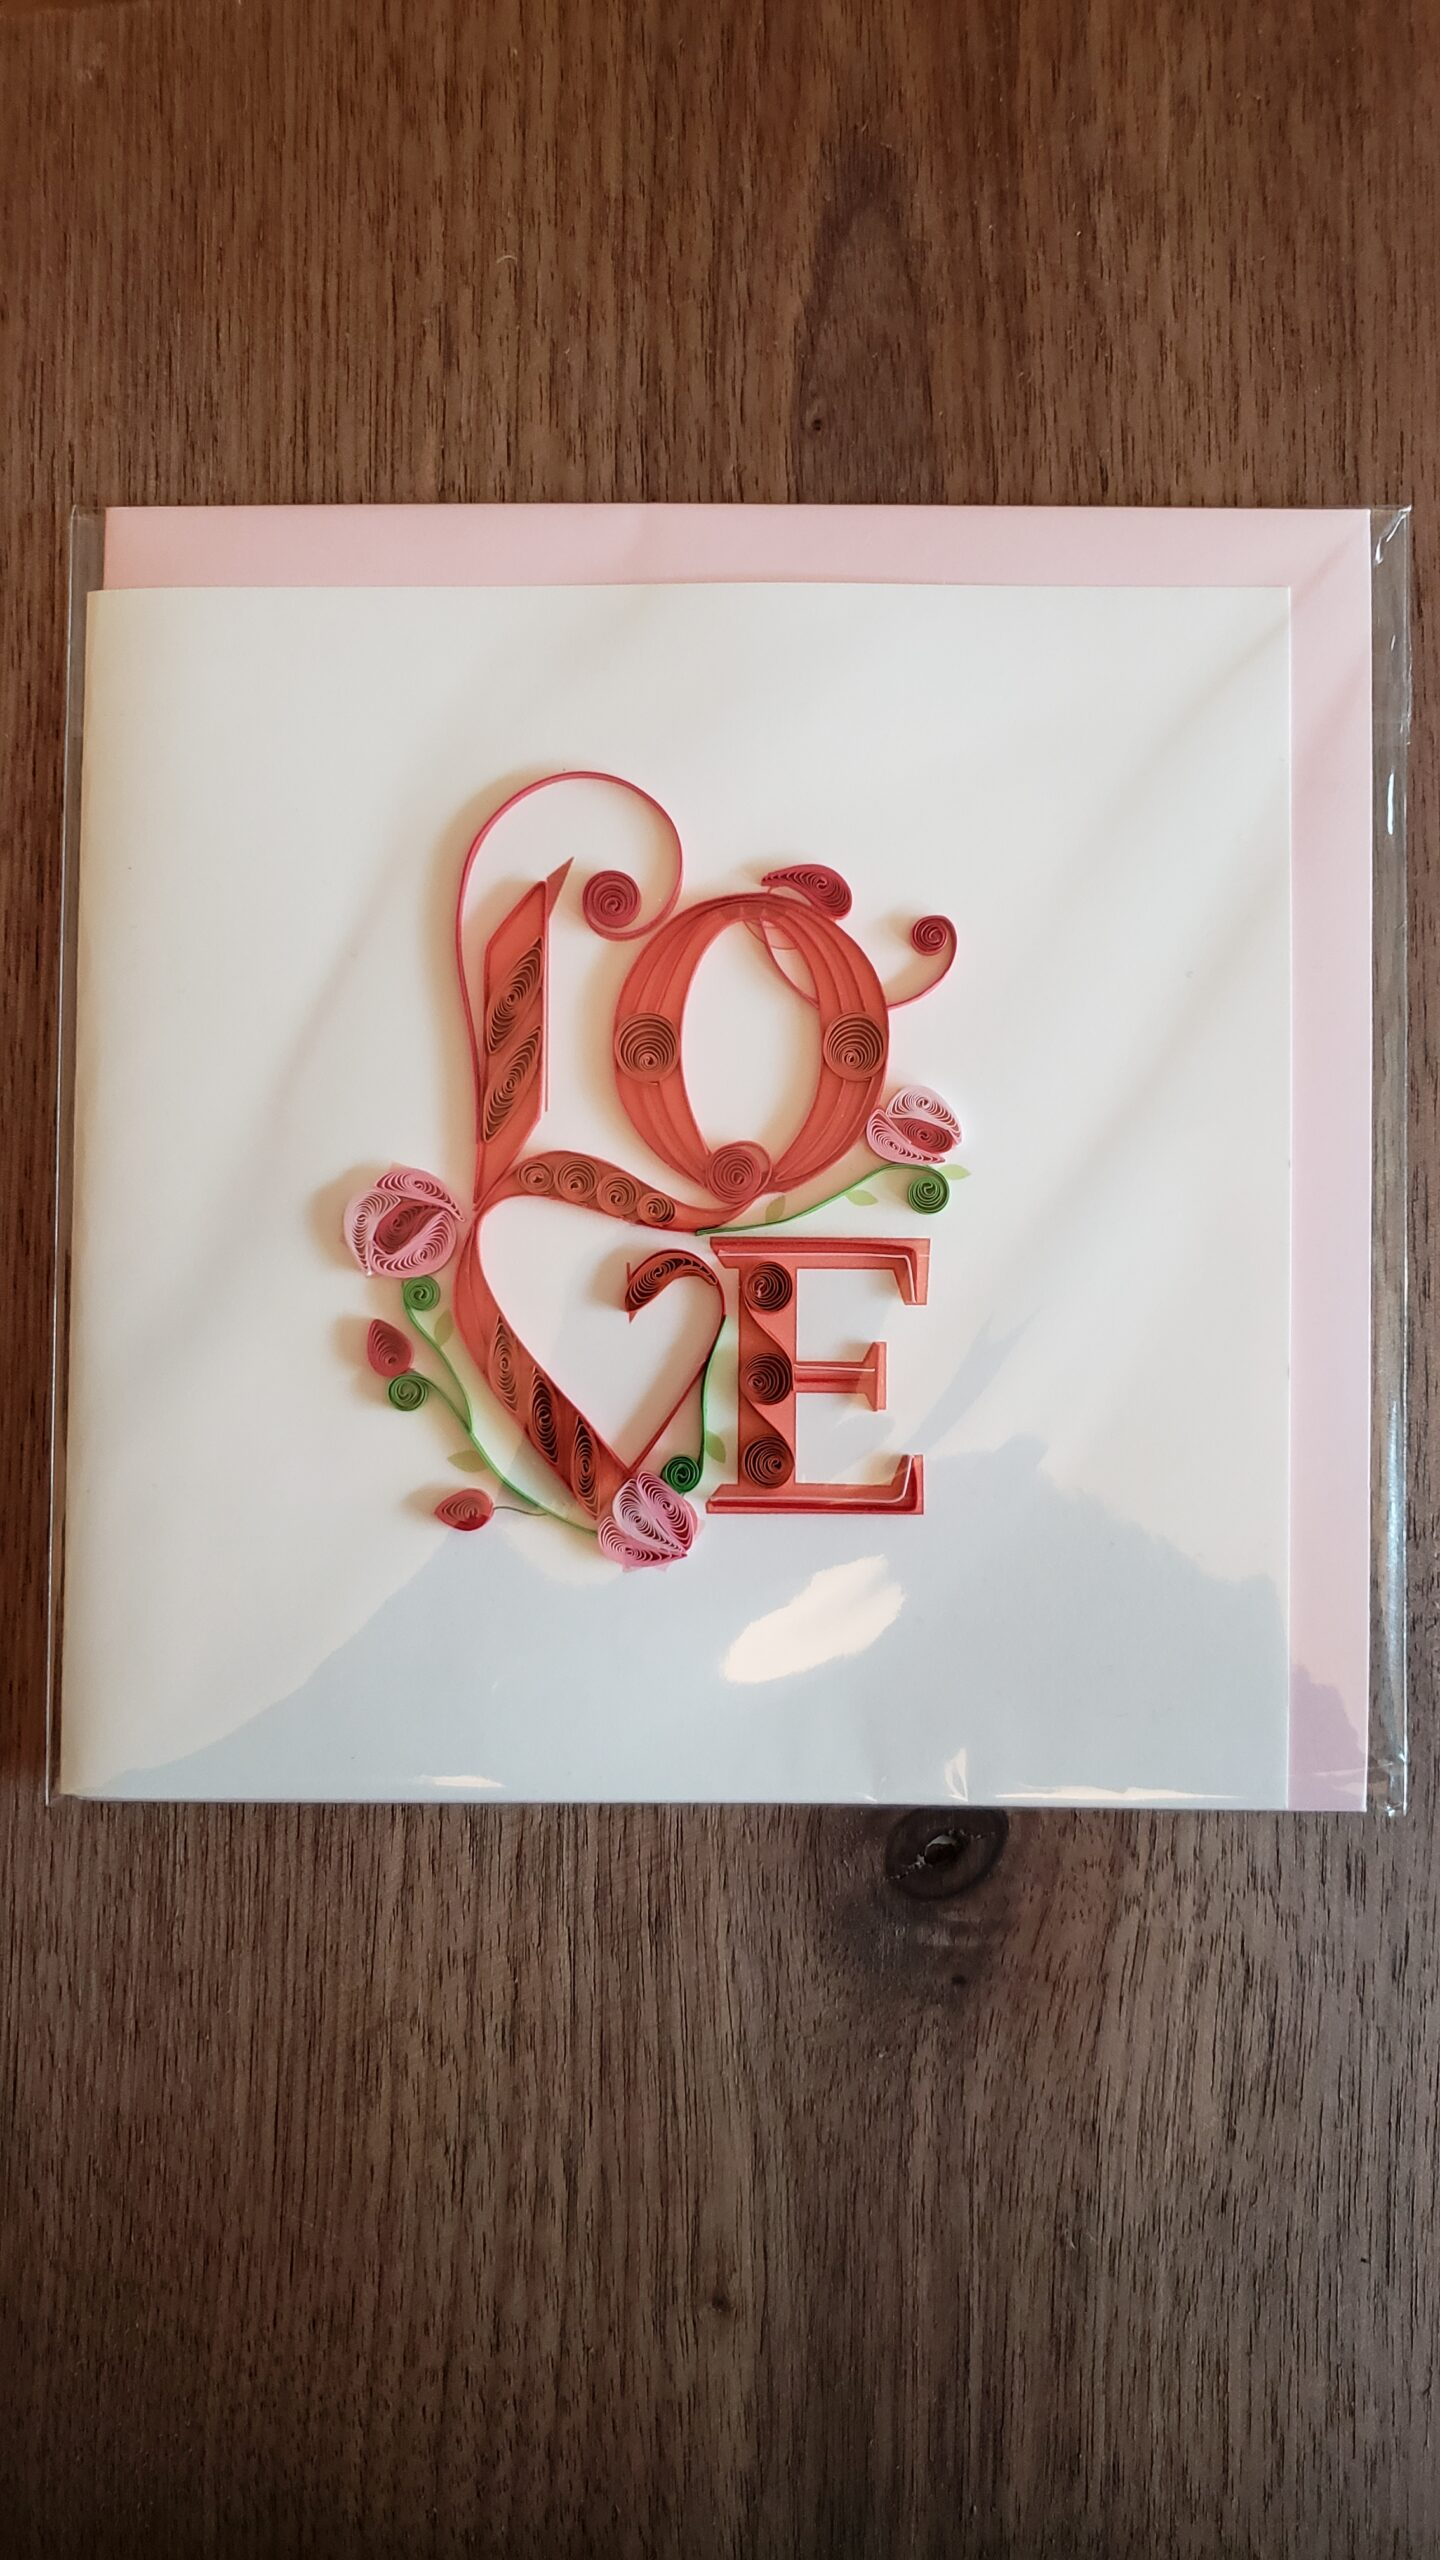 Love Greeting Card 6 in. x 6 in.